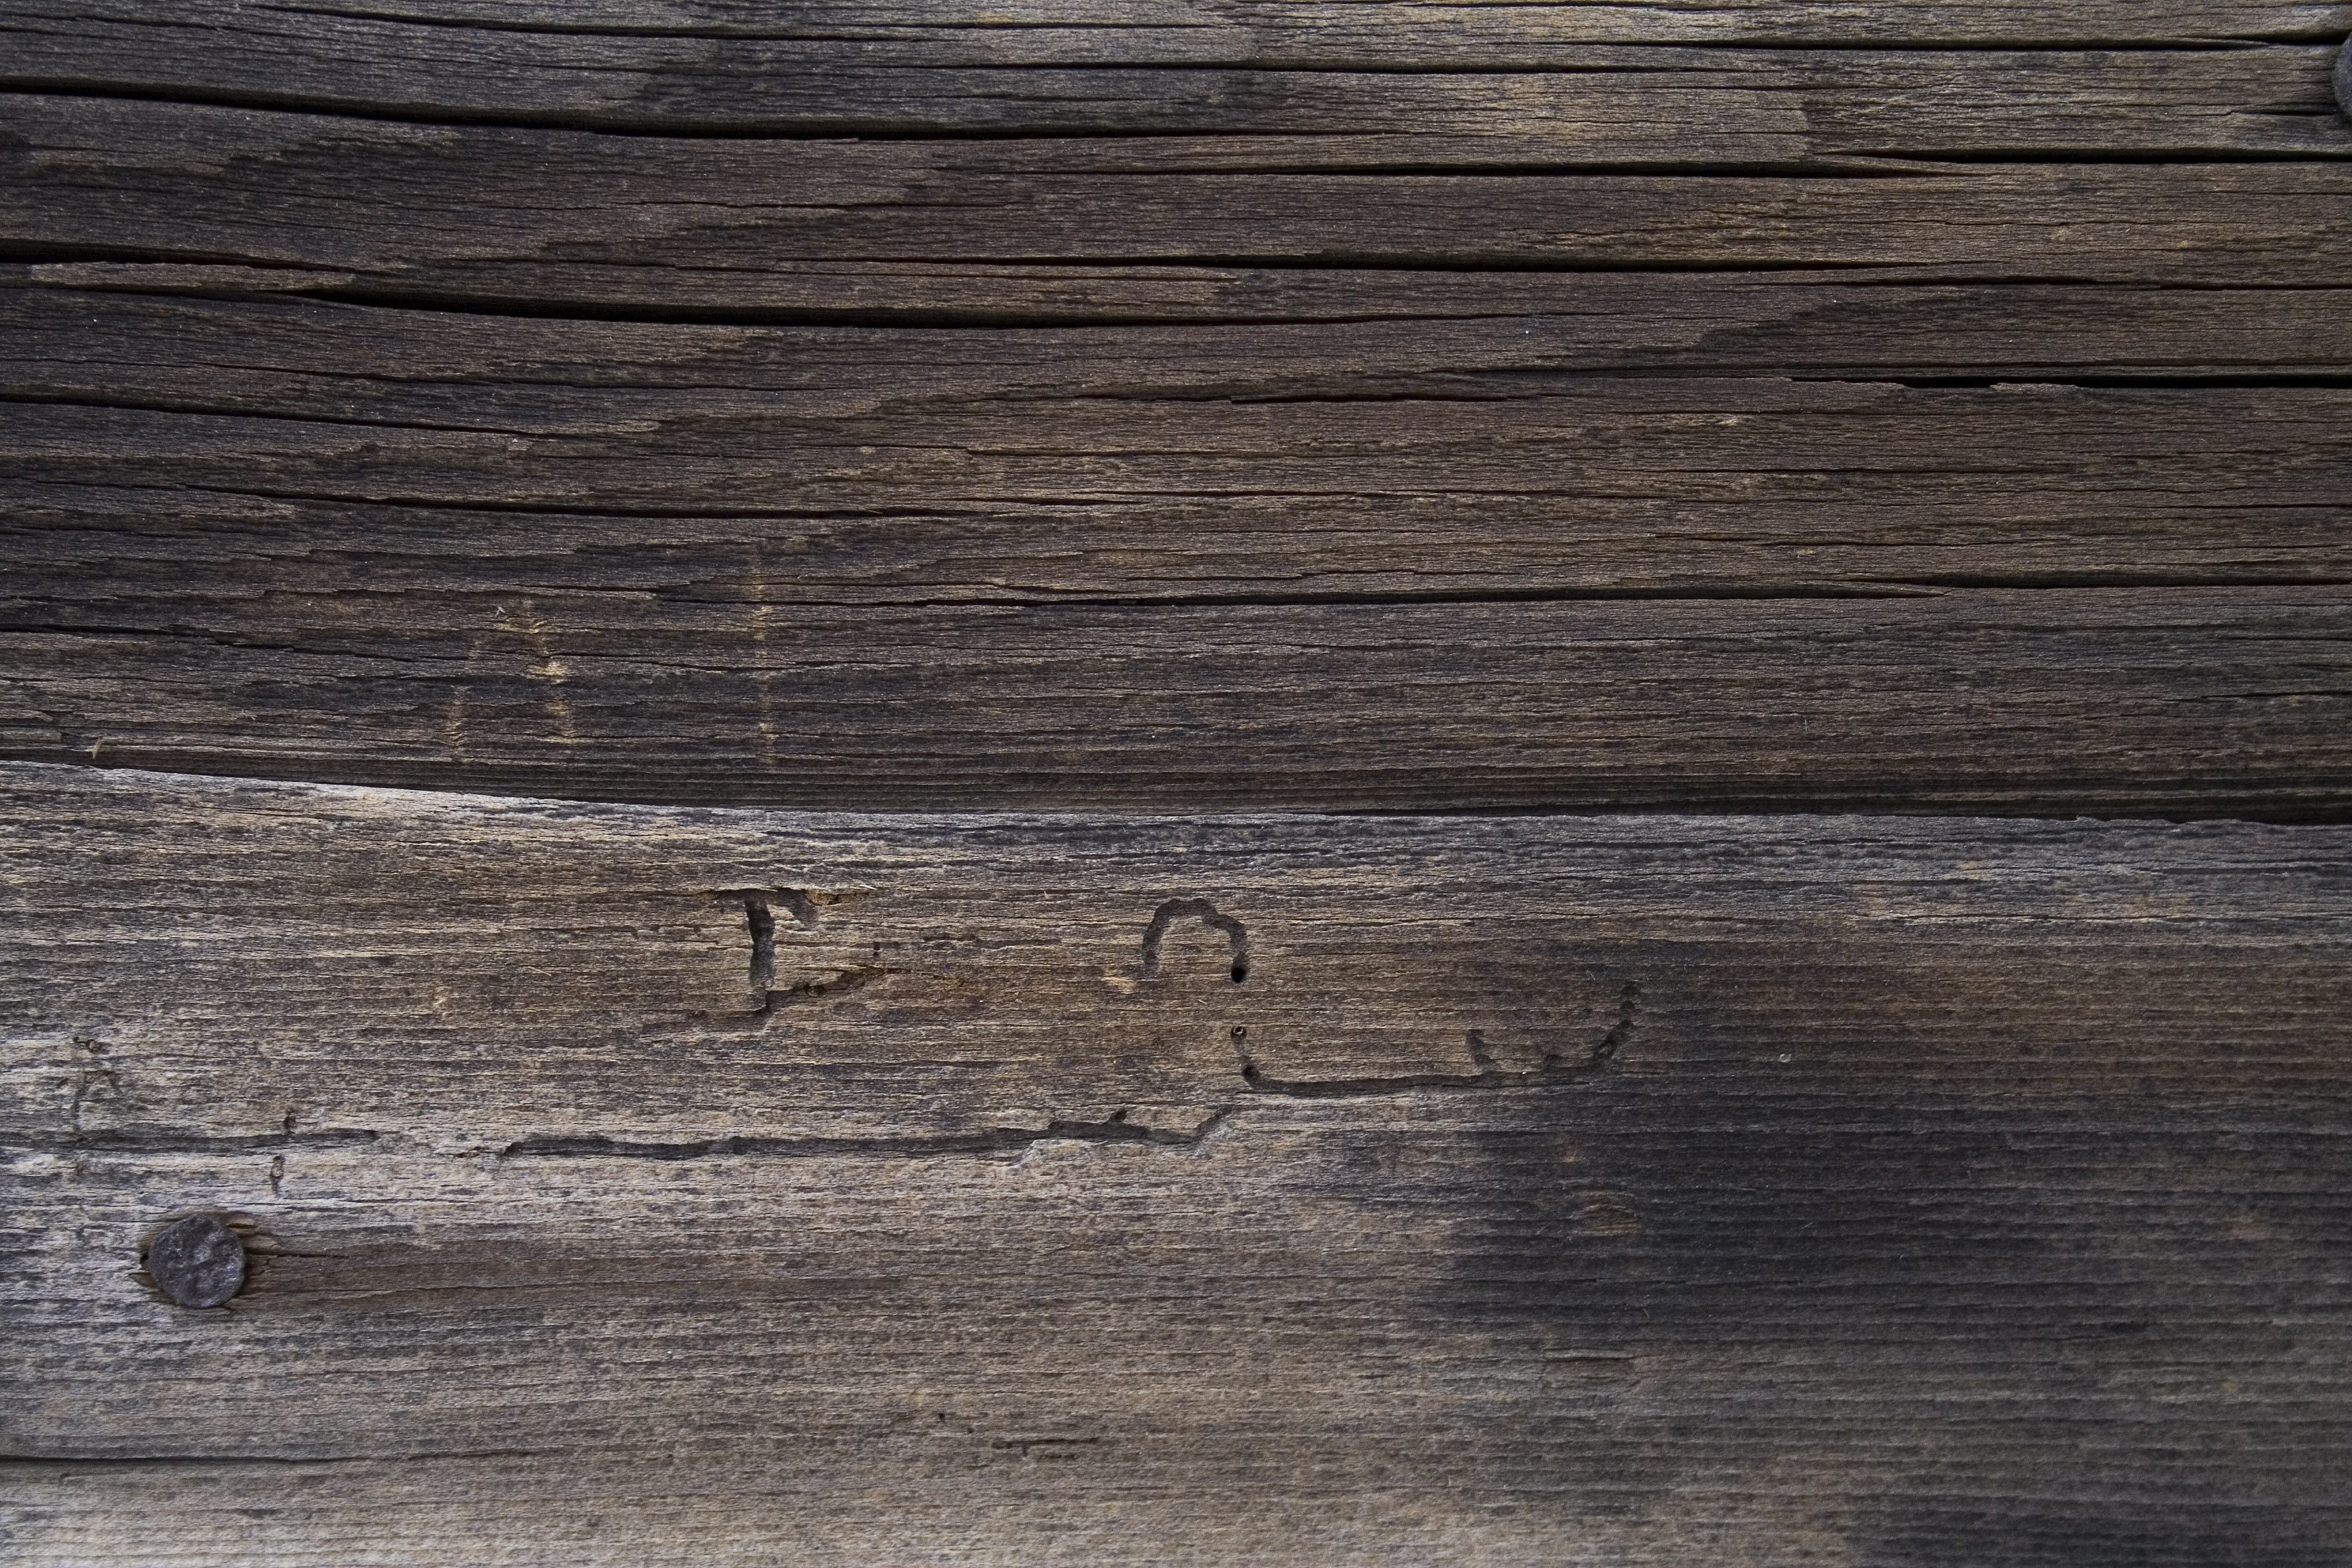 Free stock wood textures,old wood, cg textures, free download ...: becuo.com/wood-sign-texture